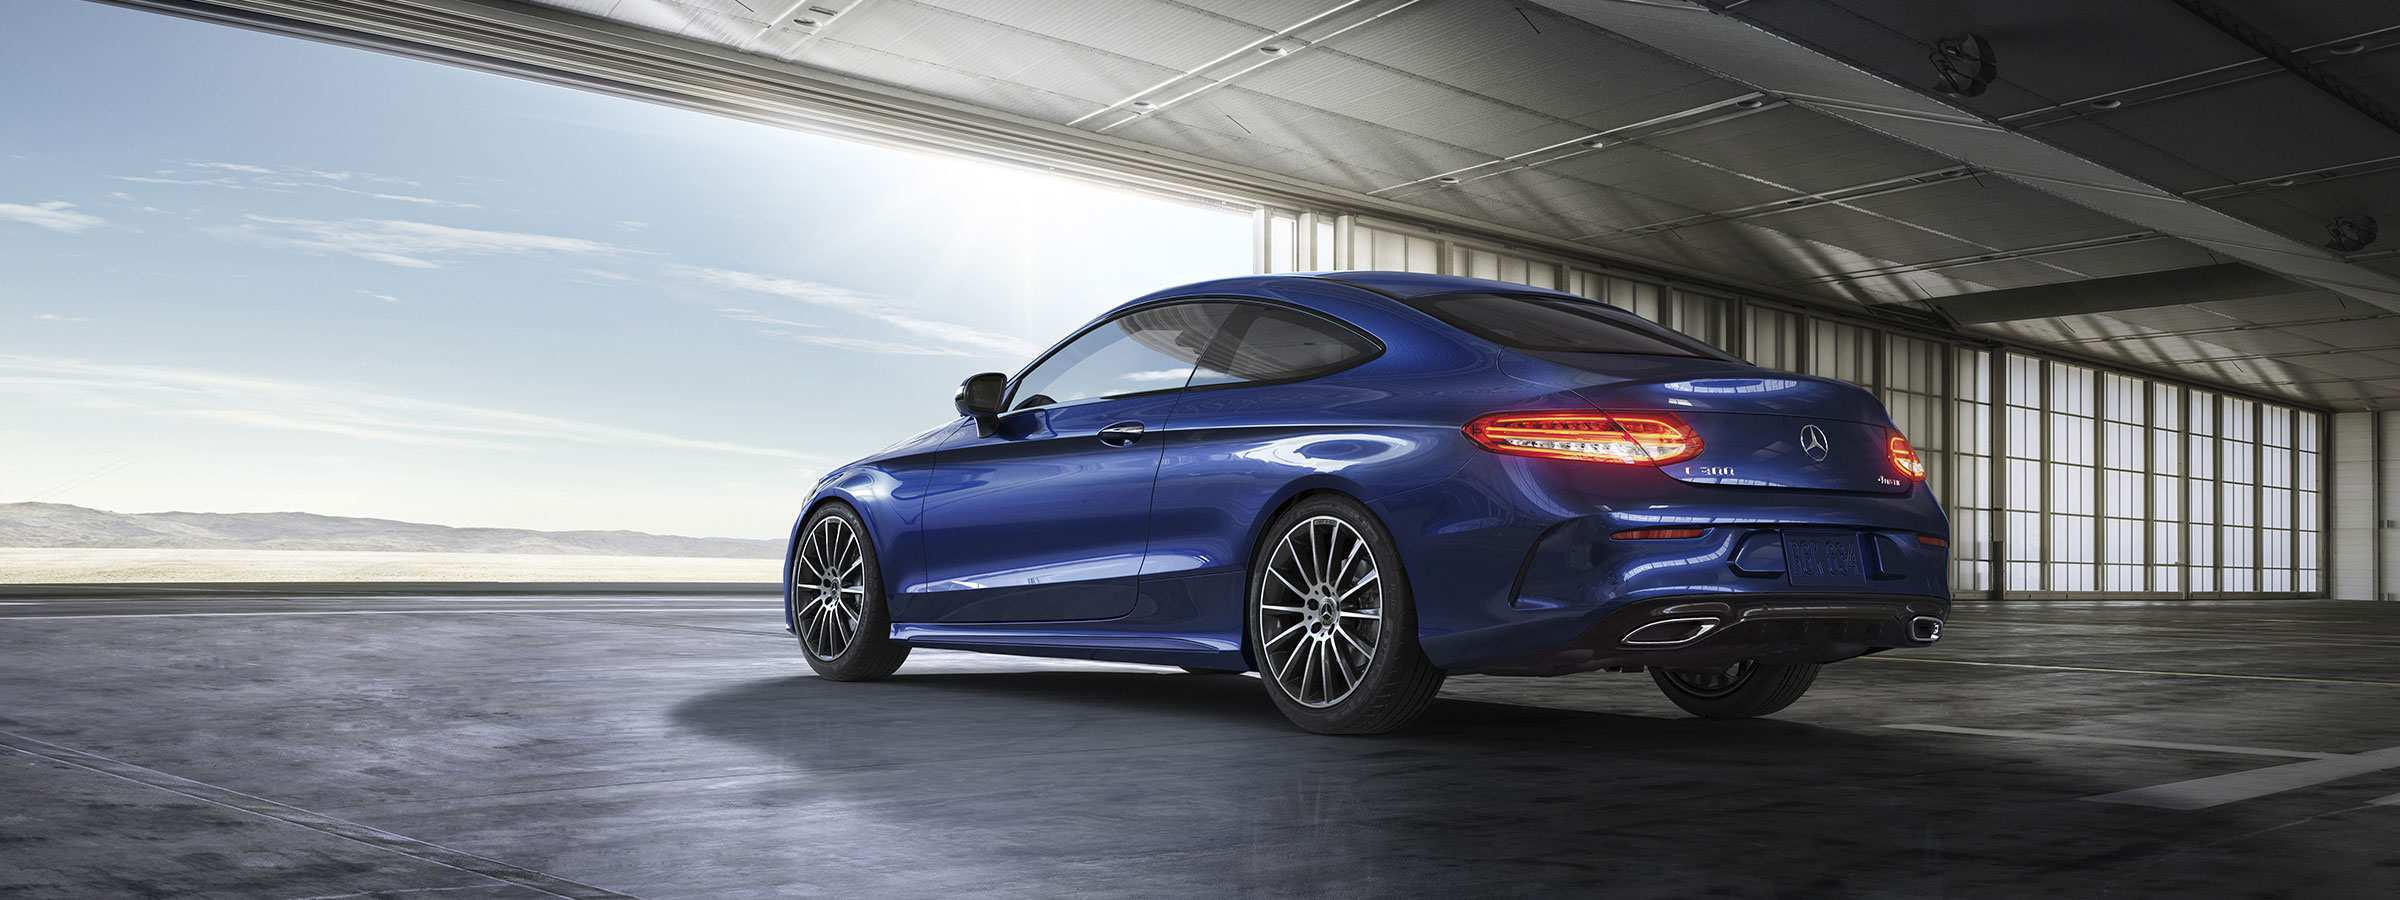 76 All New Mercedes 2019 Coupe Release